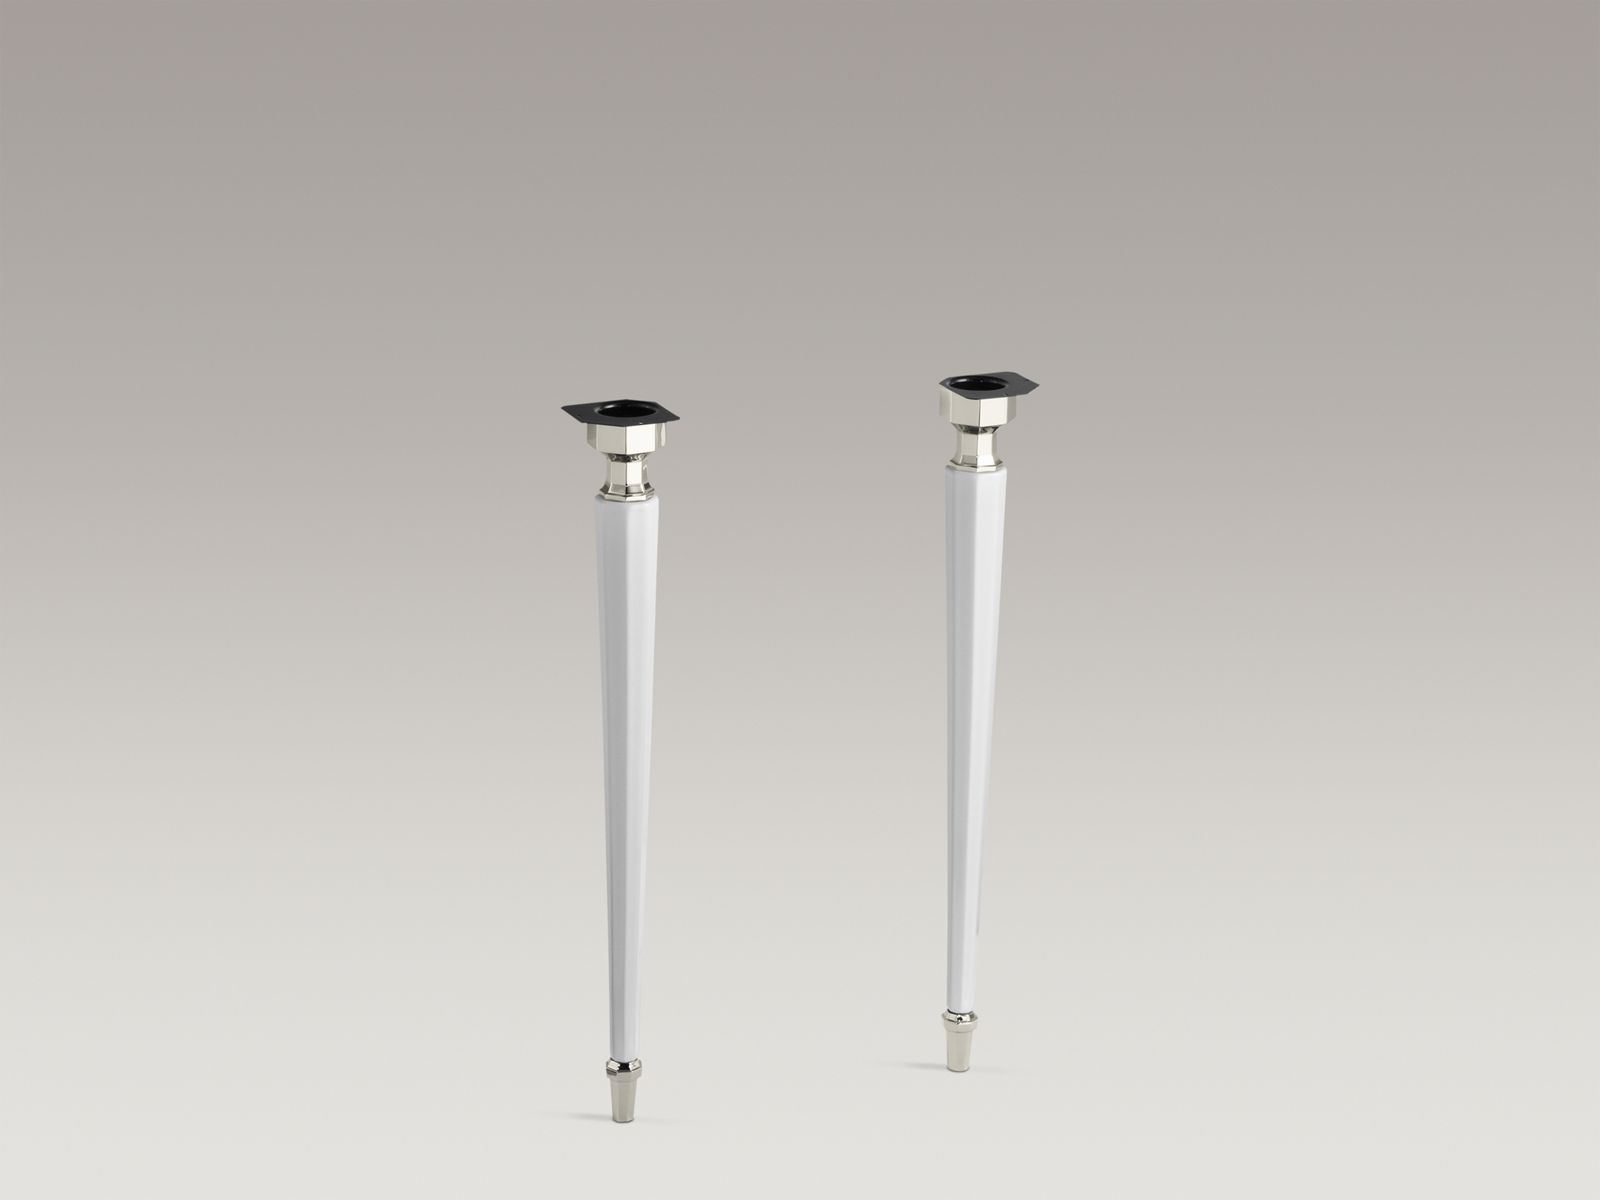 Kathryn® octagonal fireclay/Polished Nickel tapered brass table legs